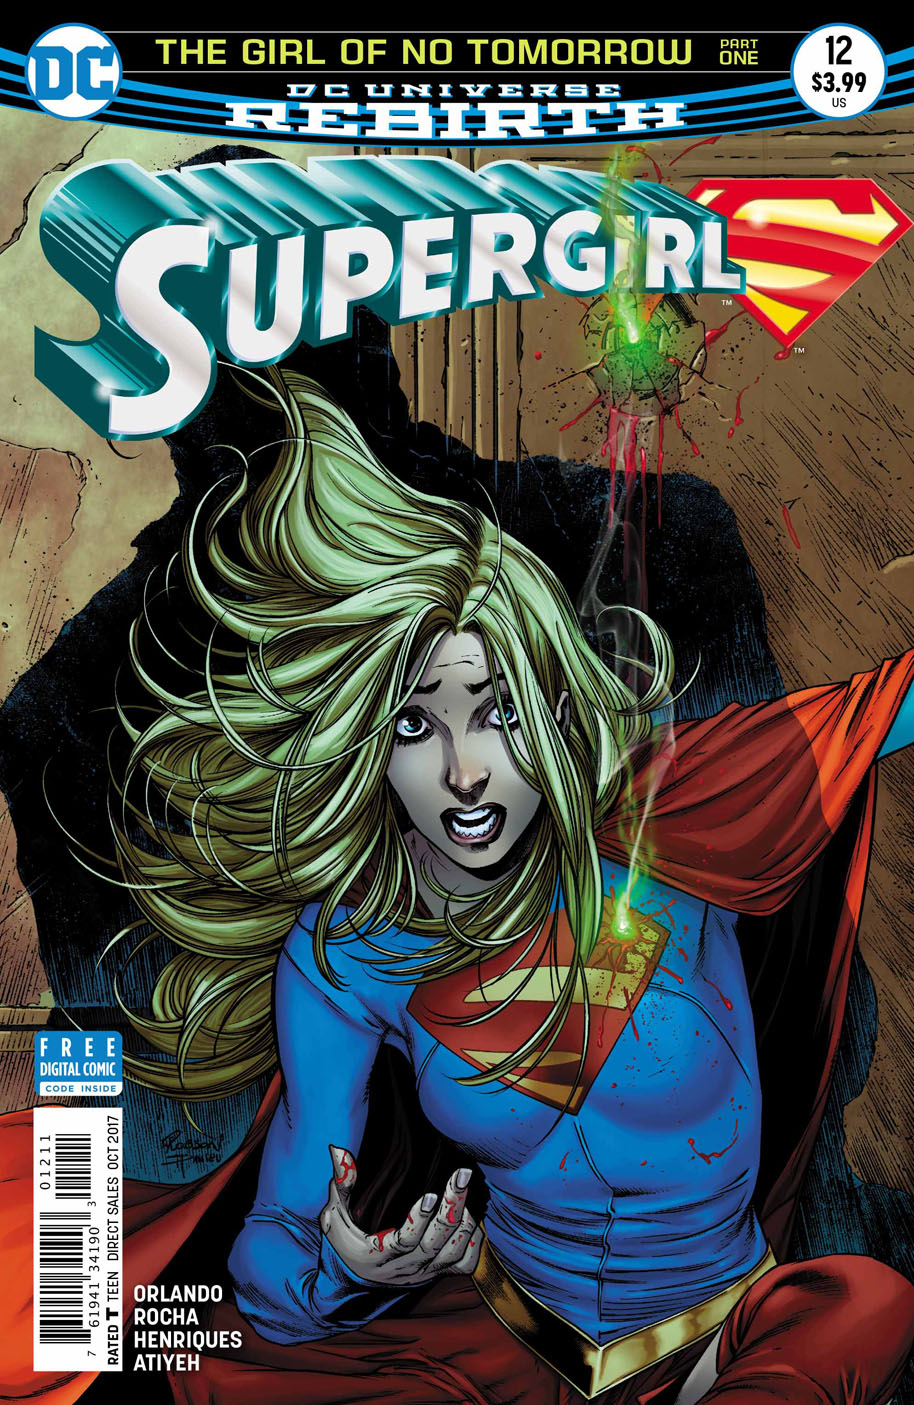 Supergirl 12 cover